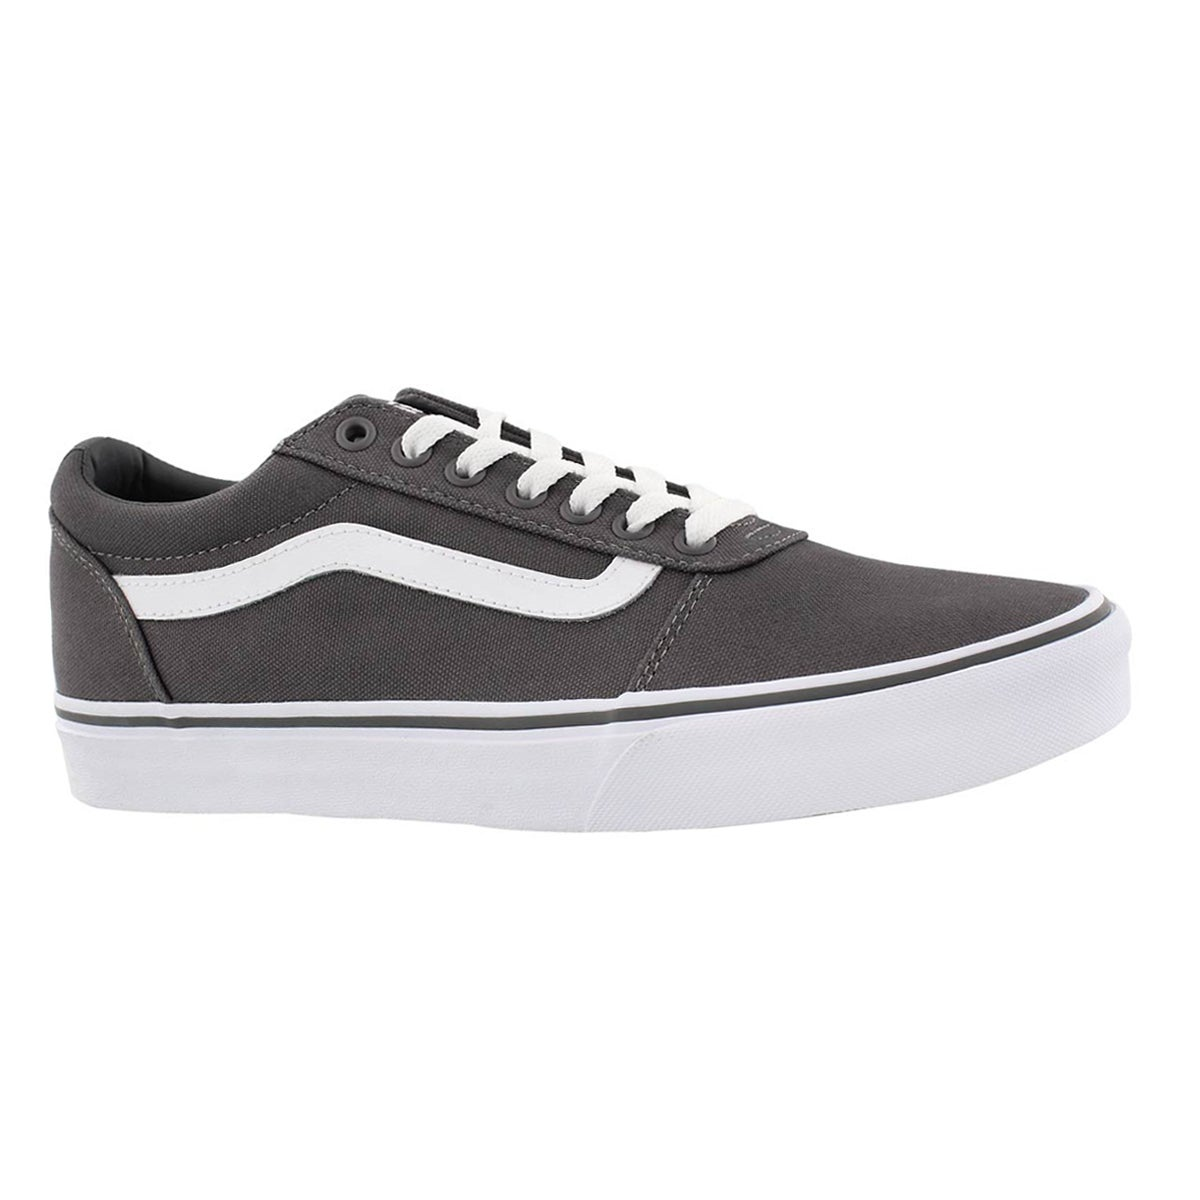 Men's WARD pewter/white lace up sneakers